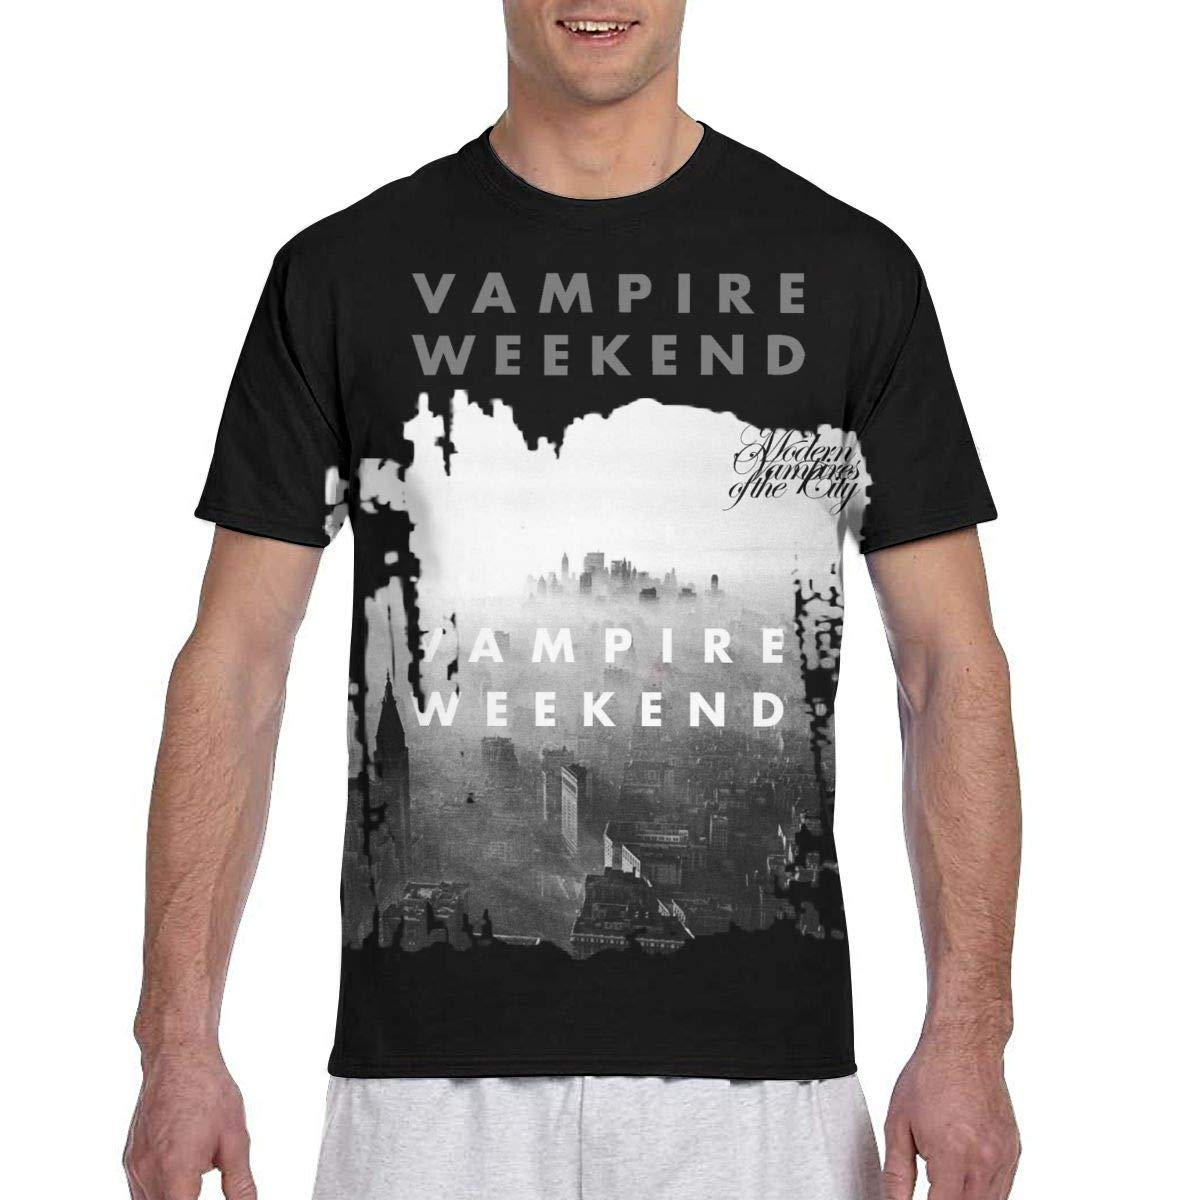 Vampire Weekend Modern Vampires of The City Woman Basic Round Neck Tops Cotton T Shirts Tshirt